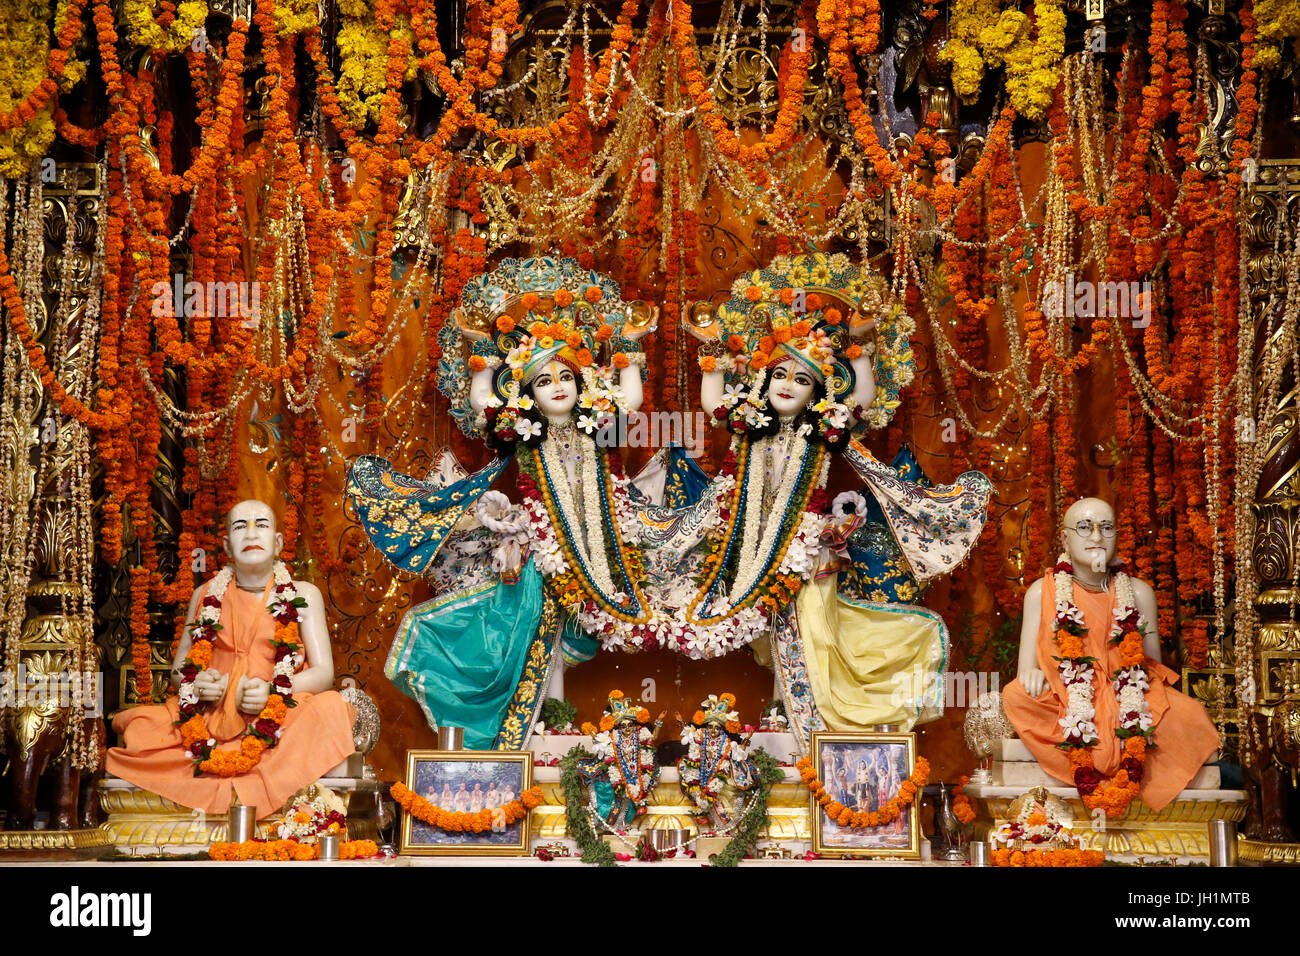 Left altar of Krishna-Balaram temple, Vrindavan. Murthis of Gaura-Nitai, Chaitanya Mahaprabhu with Nityananda, and - Stock Image